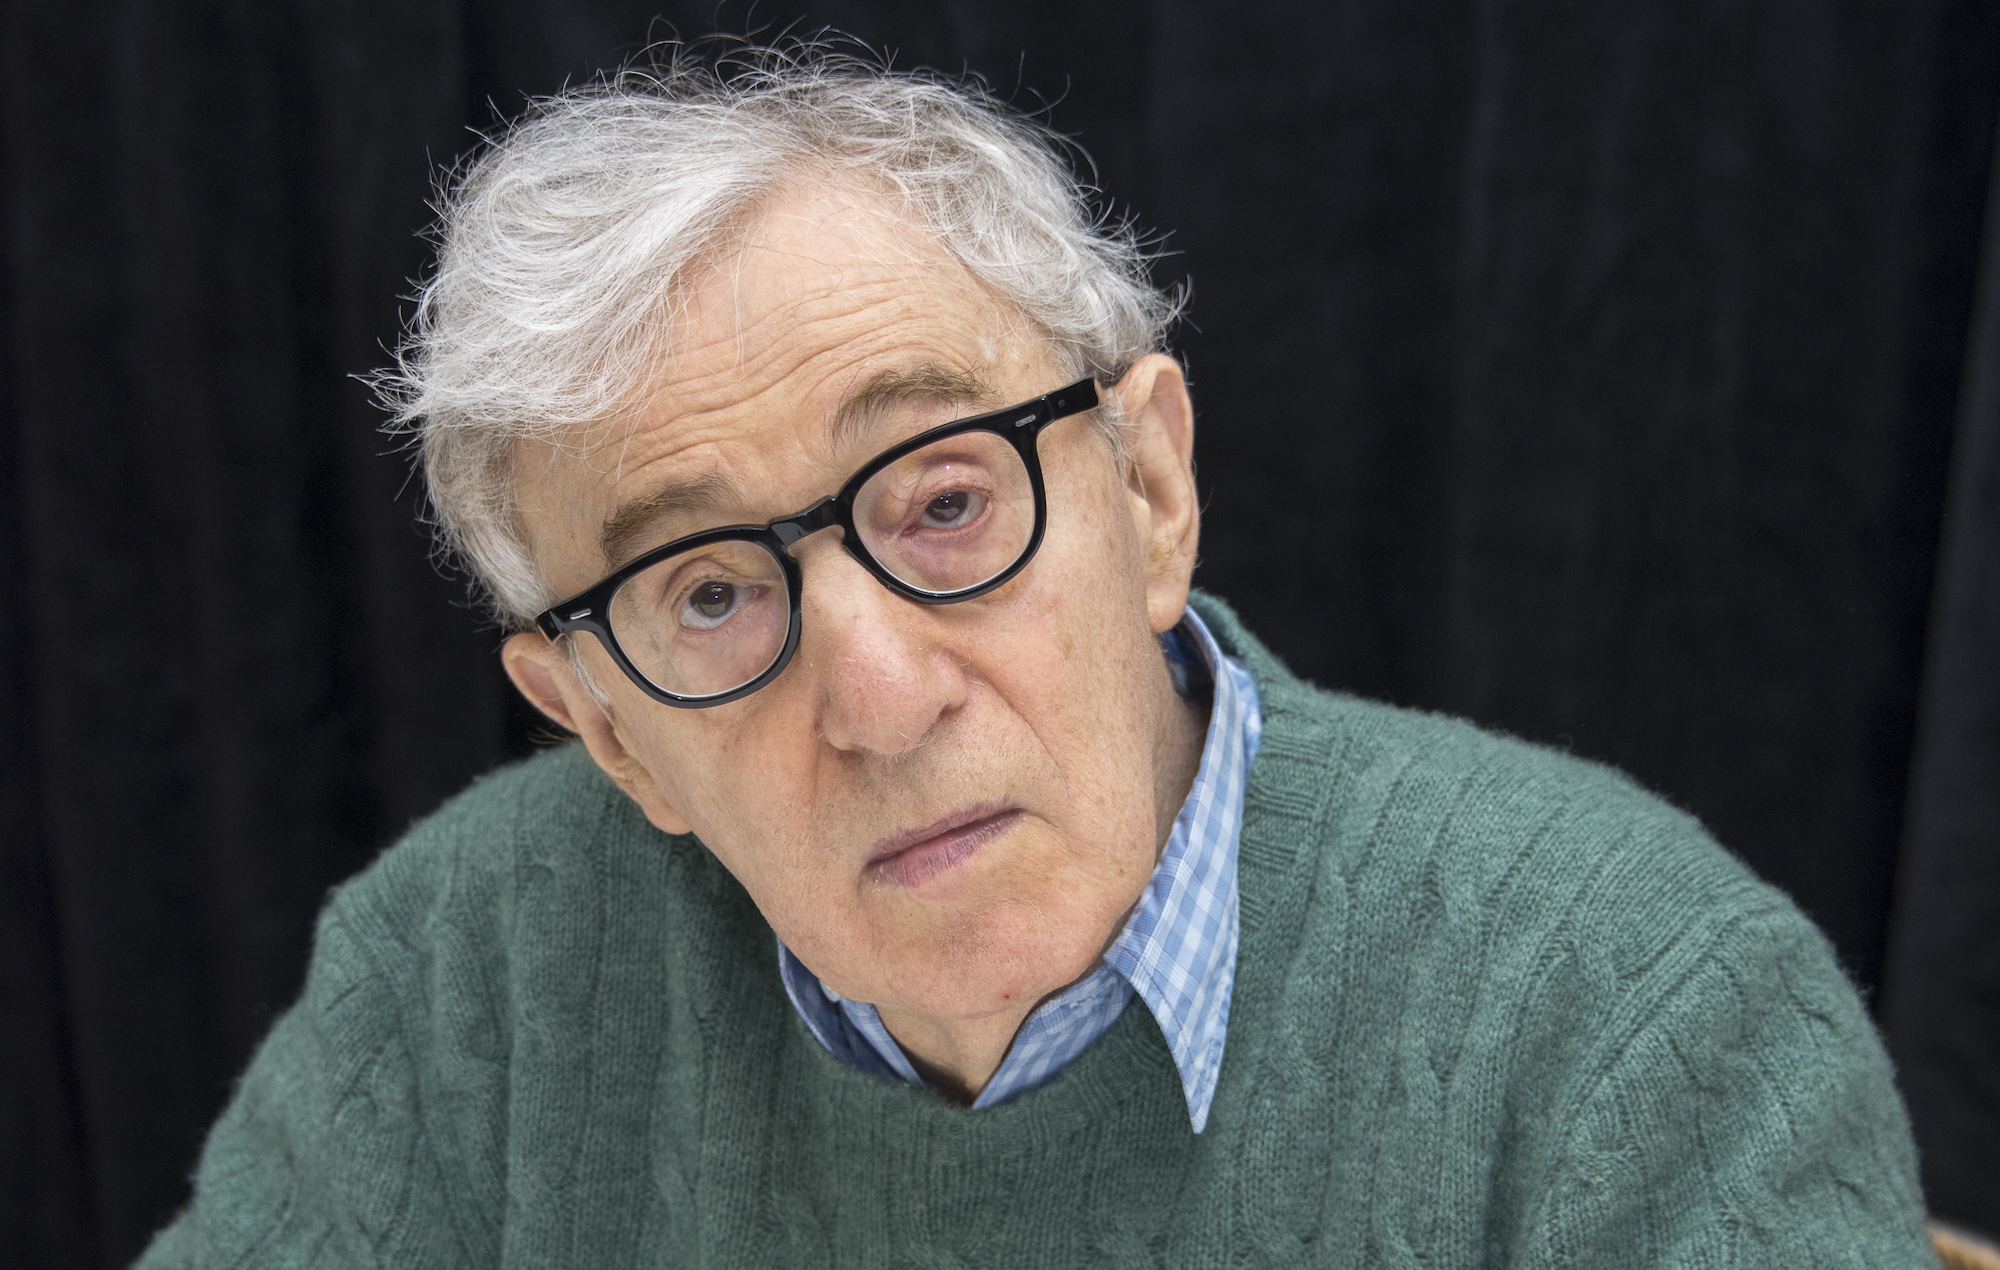 Woody Allen's 'A Rainy Day In New York' tops global box office